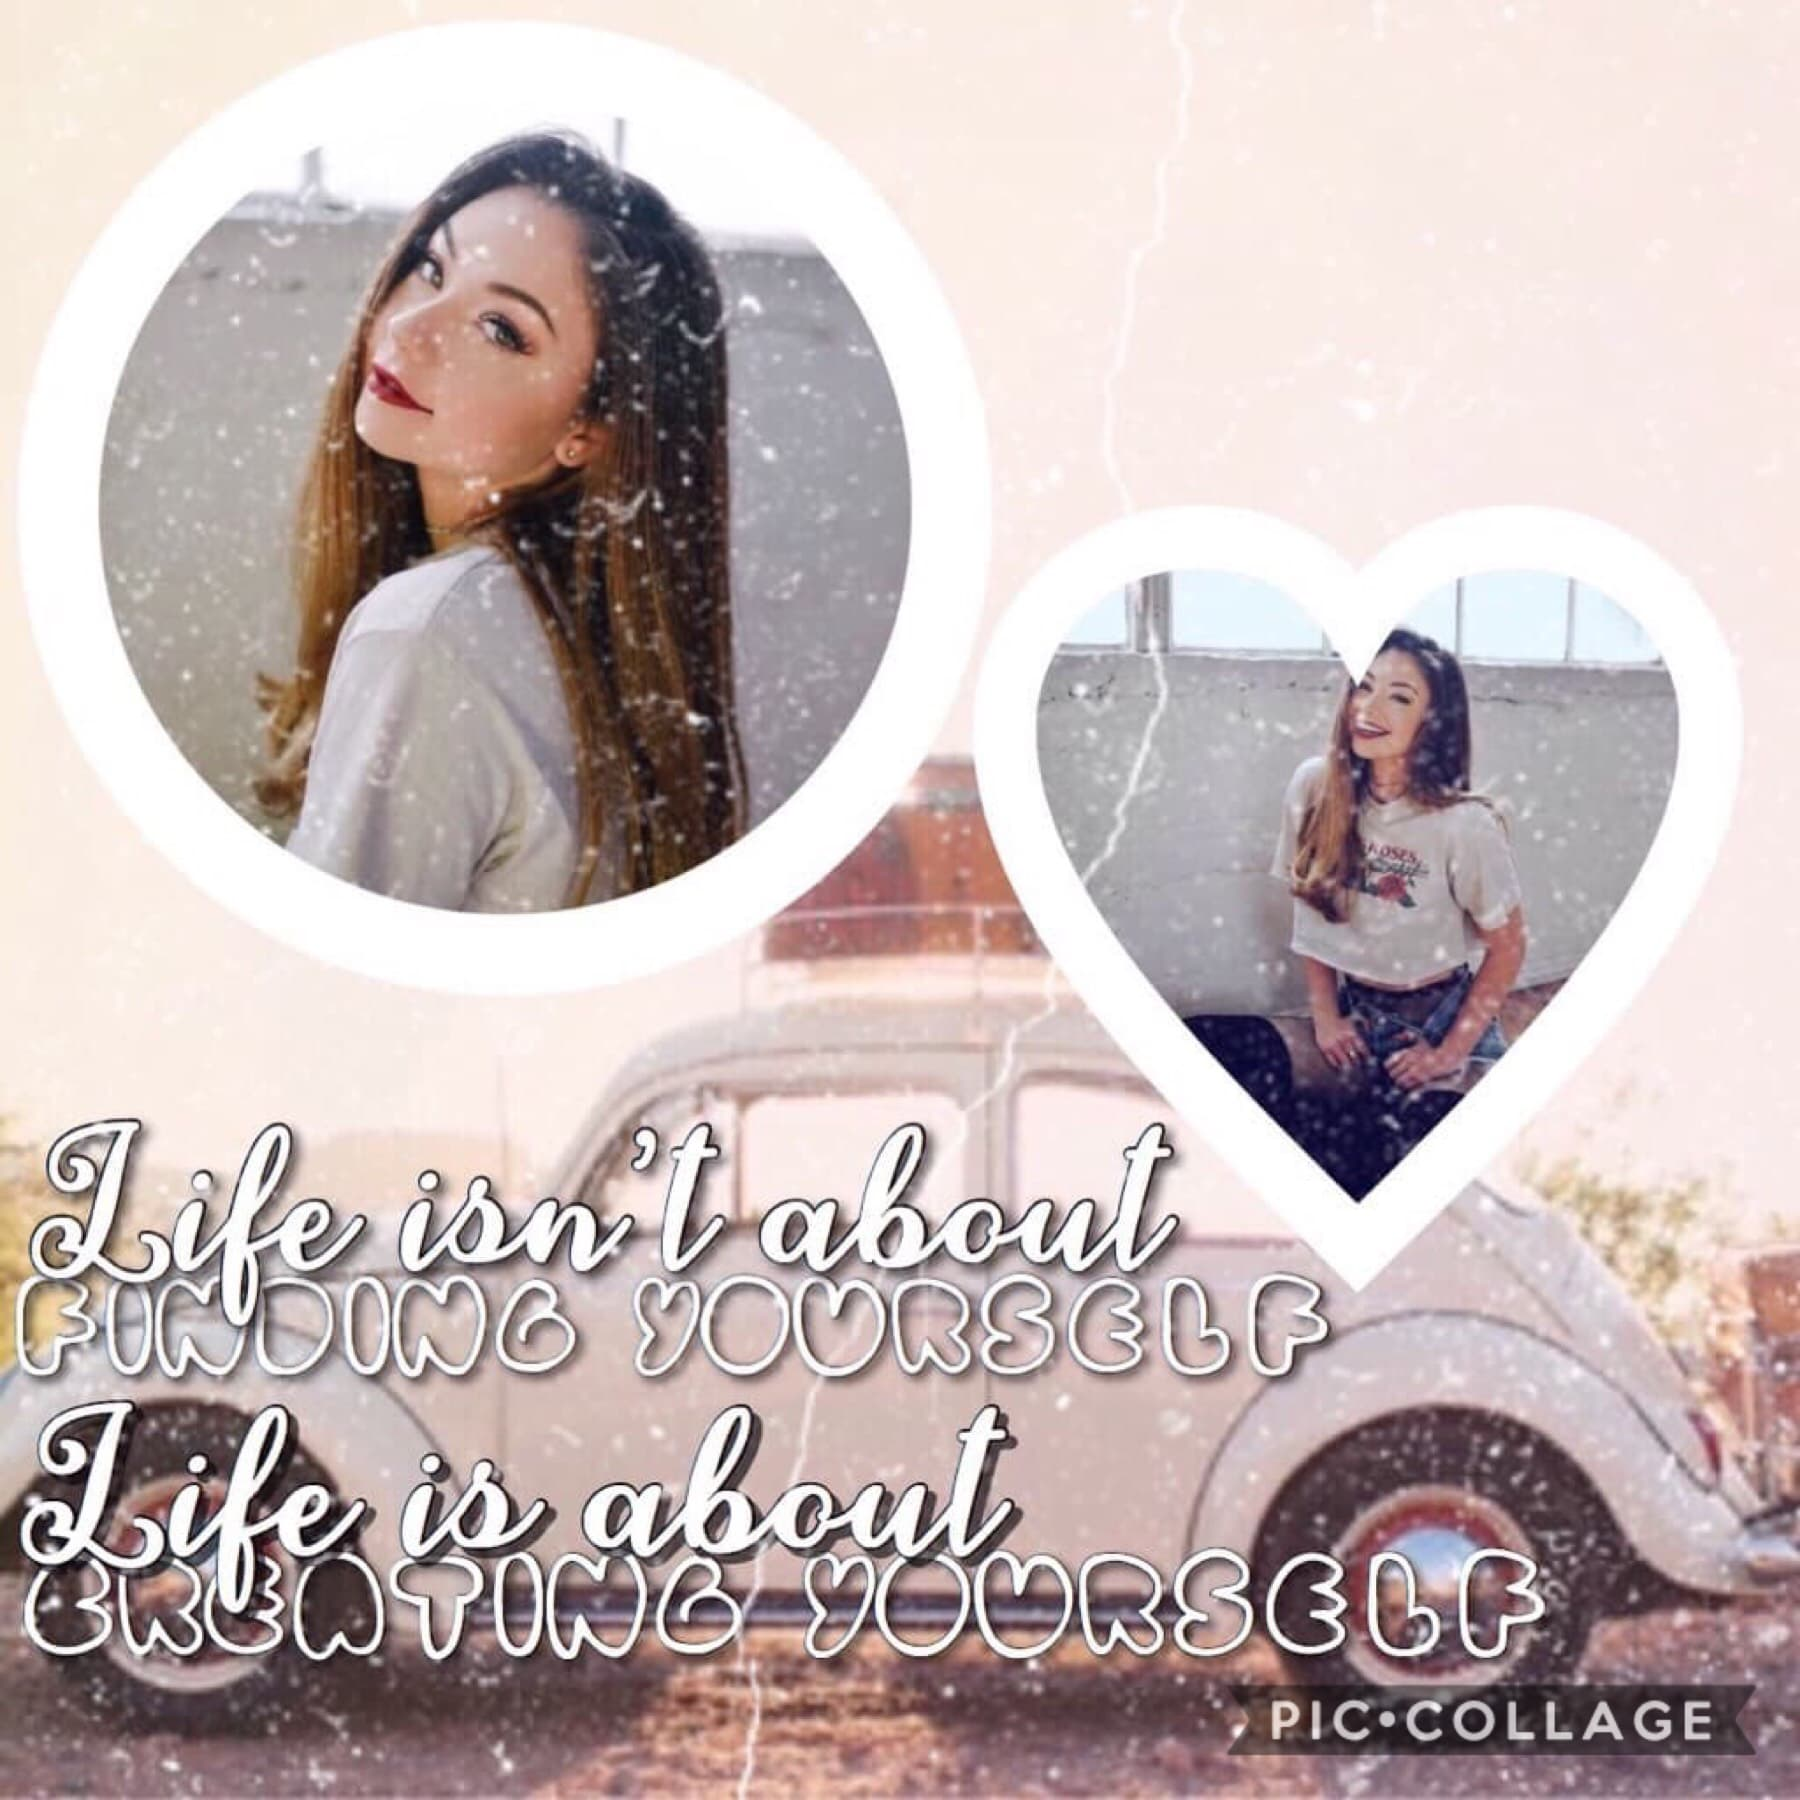 Collab with... The incredible _britkitten_!!!!❤️🤪😊 Go follow her if you aren't already! She has amazing collages!!!!🤗😘 (Idid the background, she did the text)🌽❤️